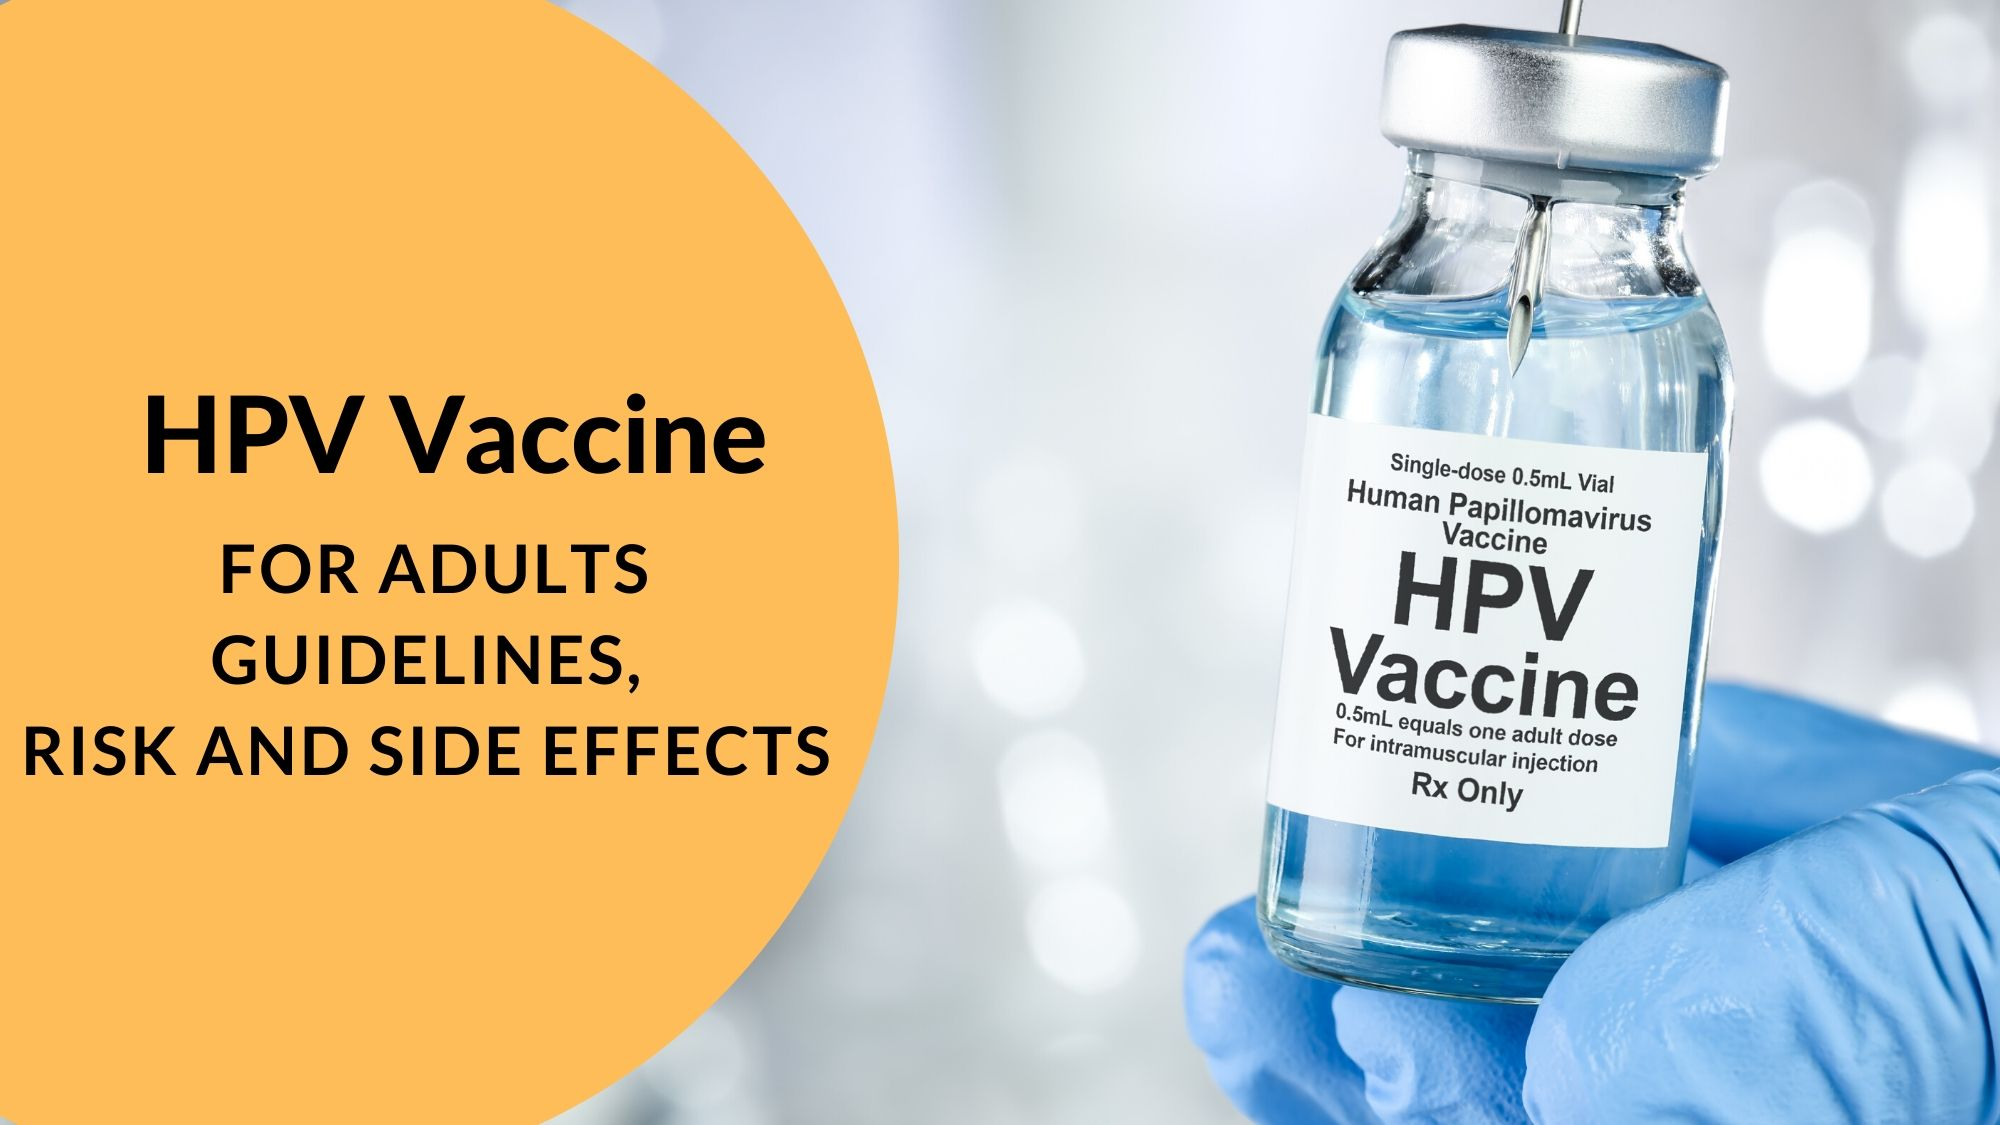 HPV Vaccine for Adults - Guidelines, Risk and Side Effects